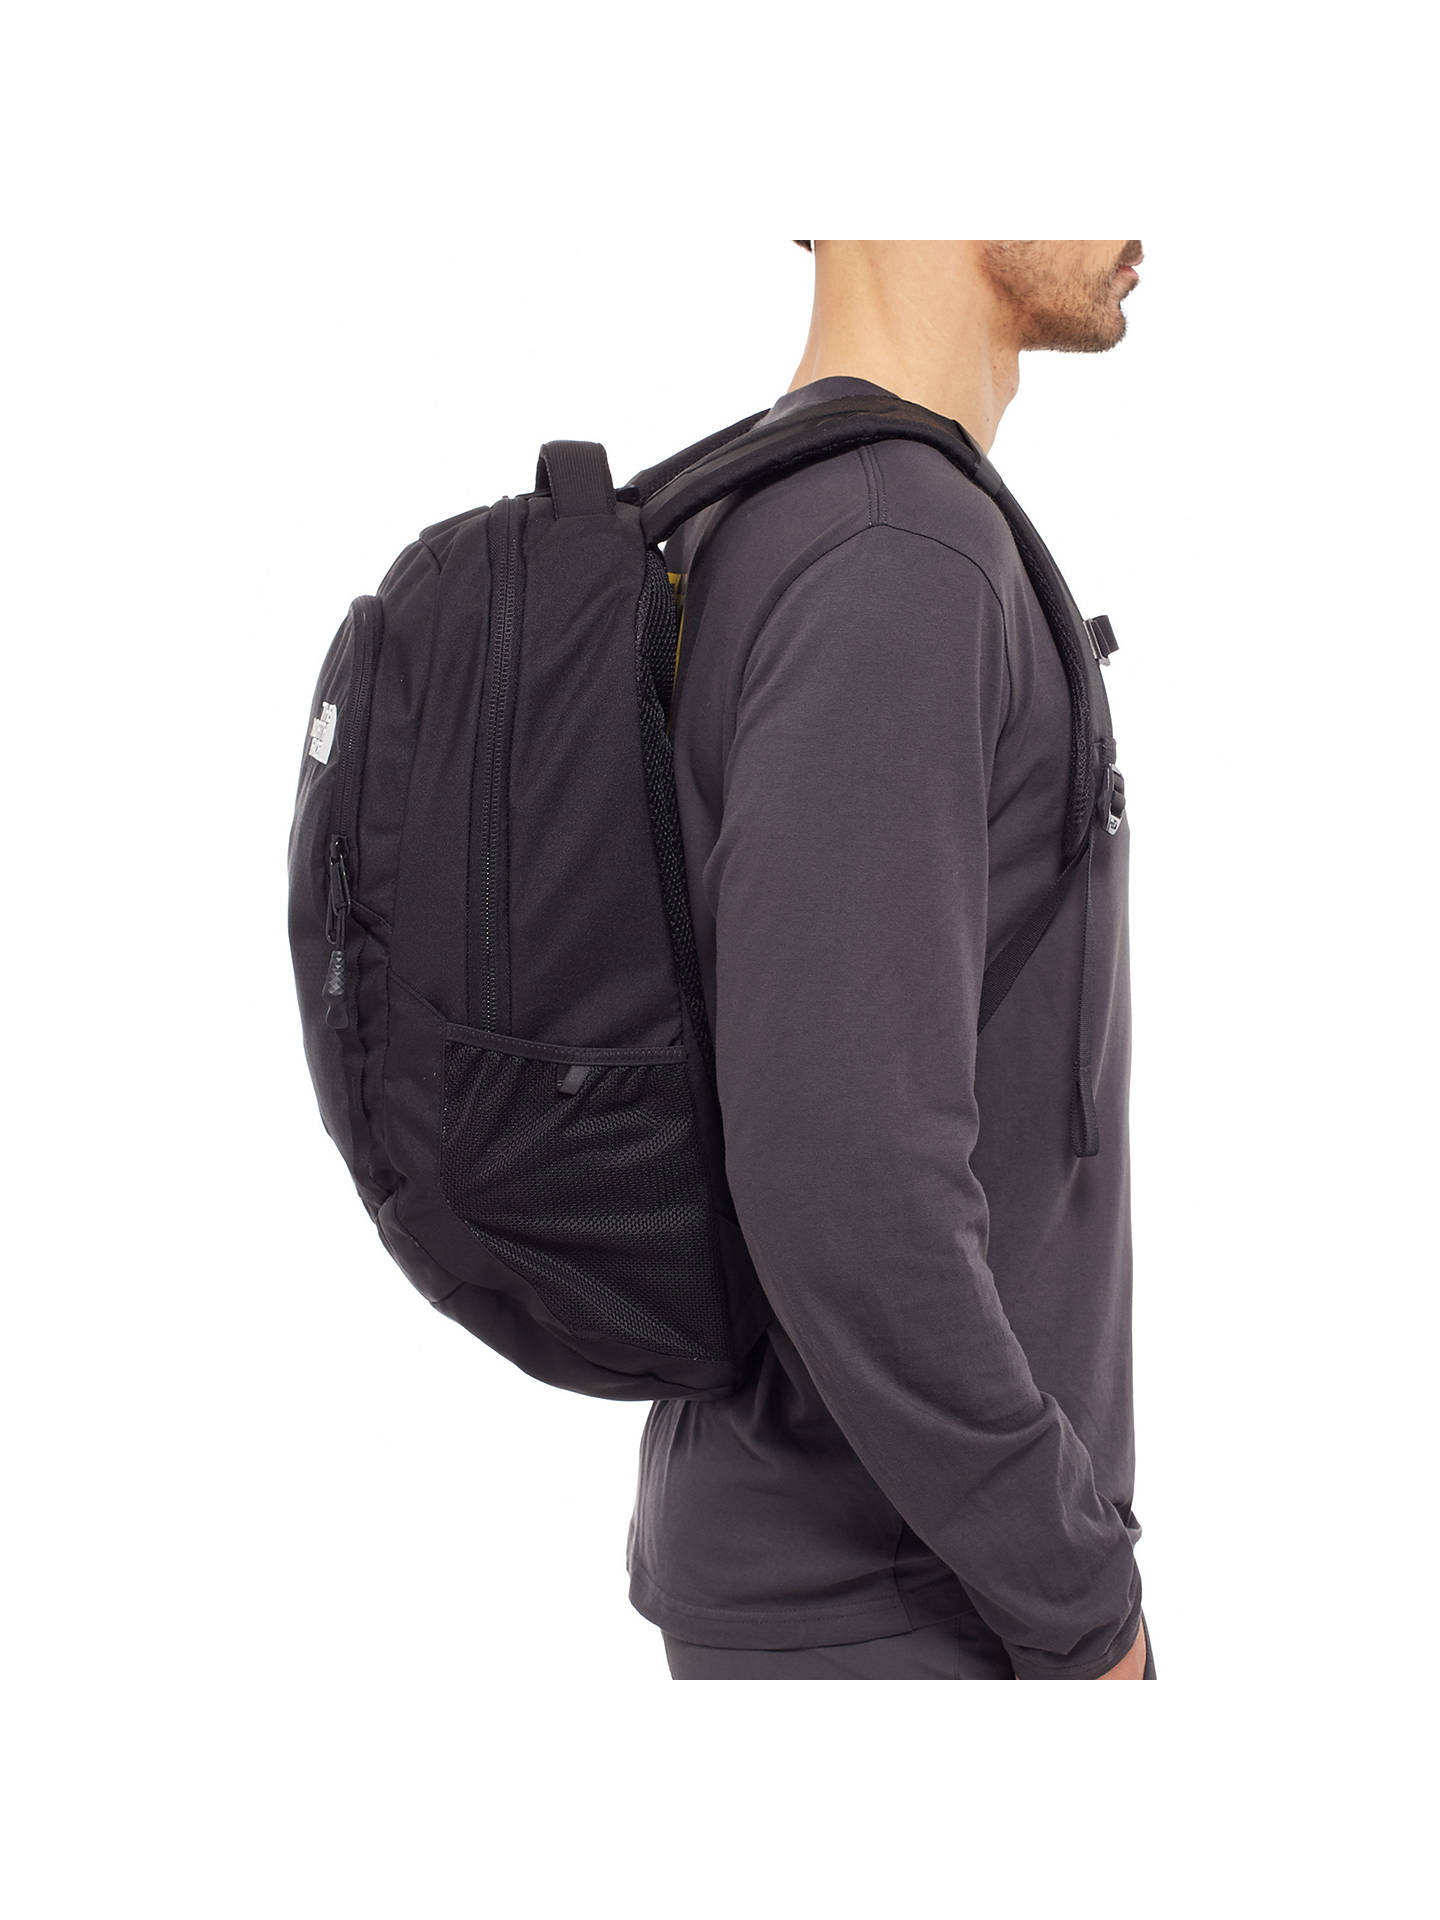 new product 6785f 11d3a The North Face Vault Backpack, Black at John Lewis & Partners